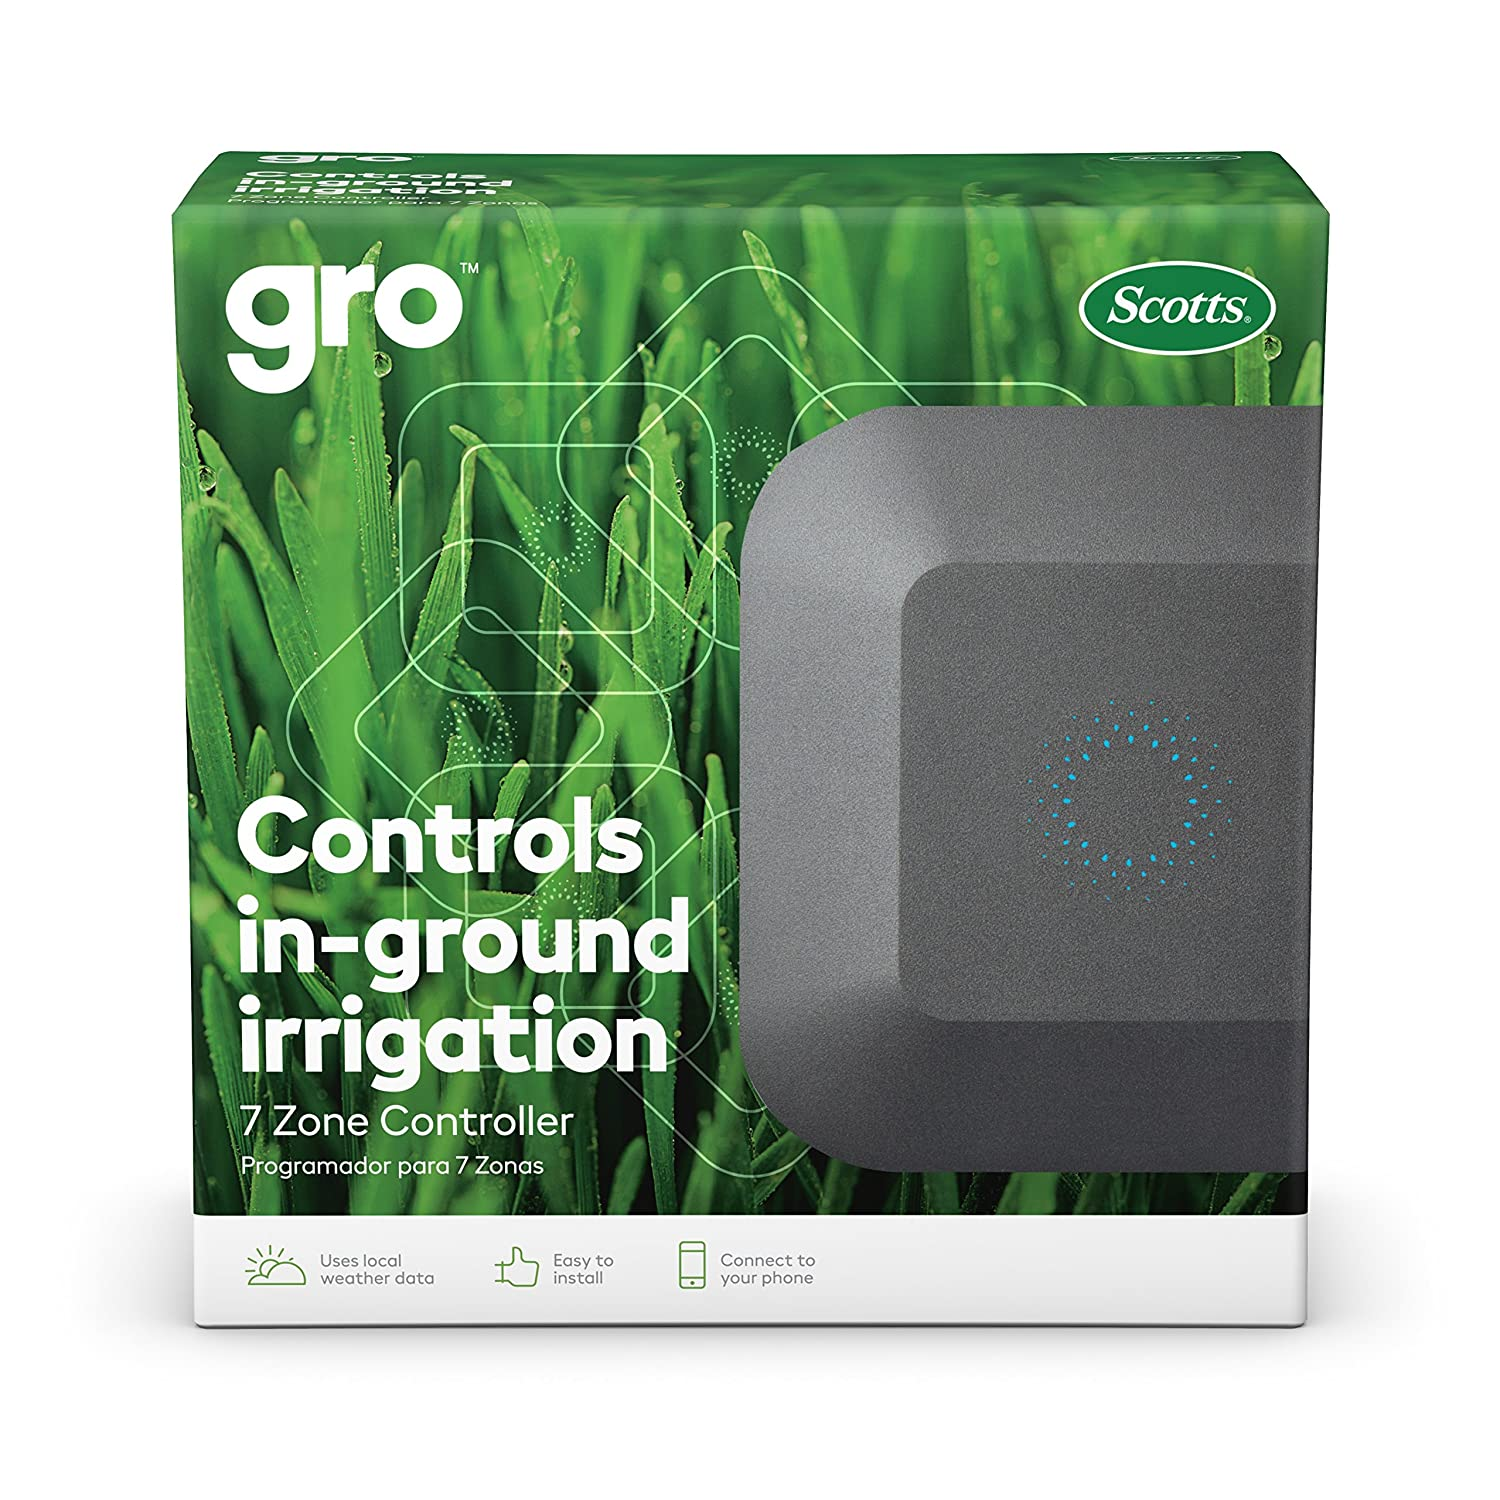 Gro 7 Zone Controller from Scotts|Works With Alexa & Google Assistant|Easily Control Water For Up To 7 Zones|Uses Real Time Weather Data To Automatically Adjust Watering Schedule & Reduce Water Waste